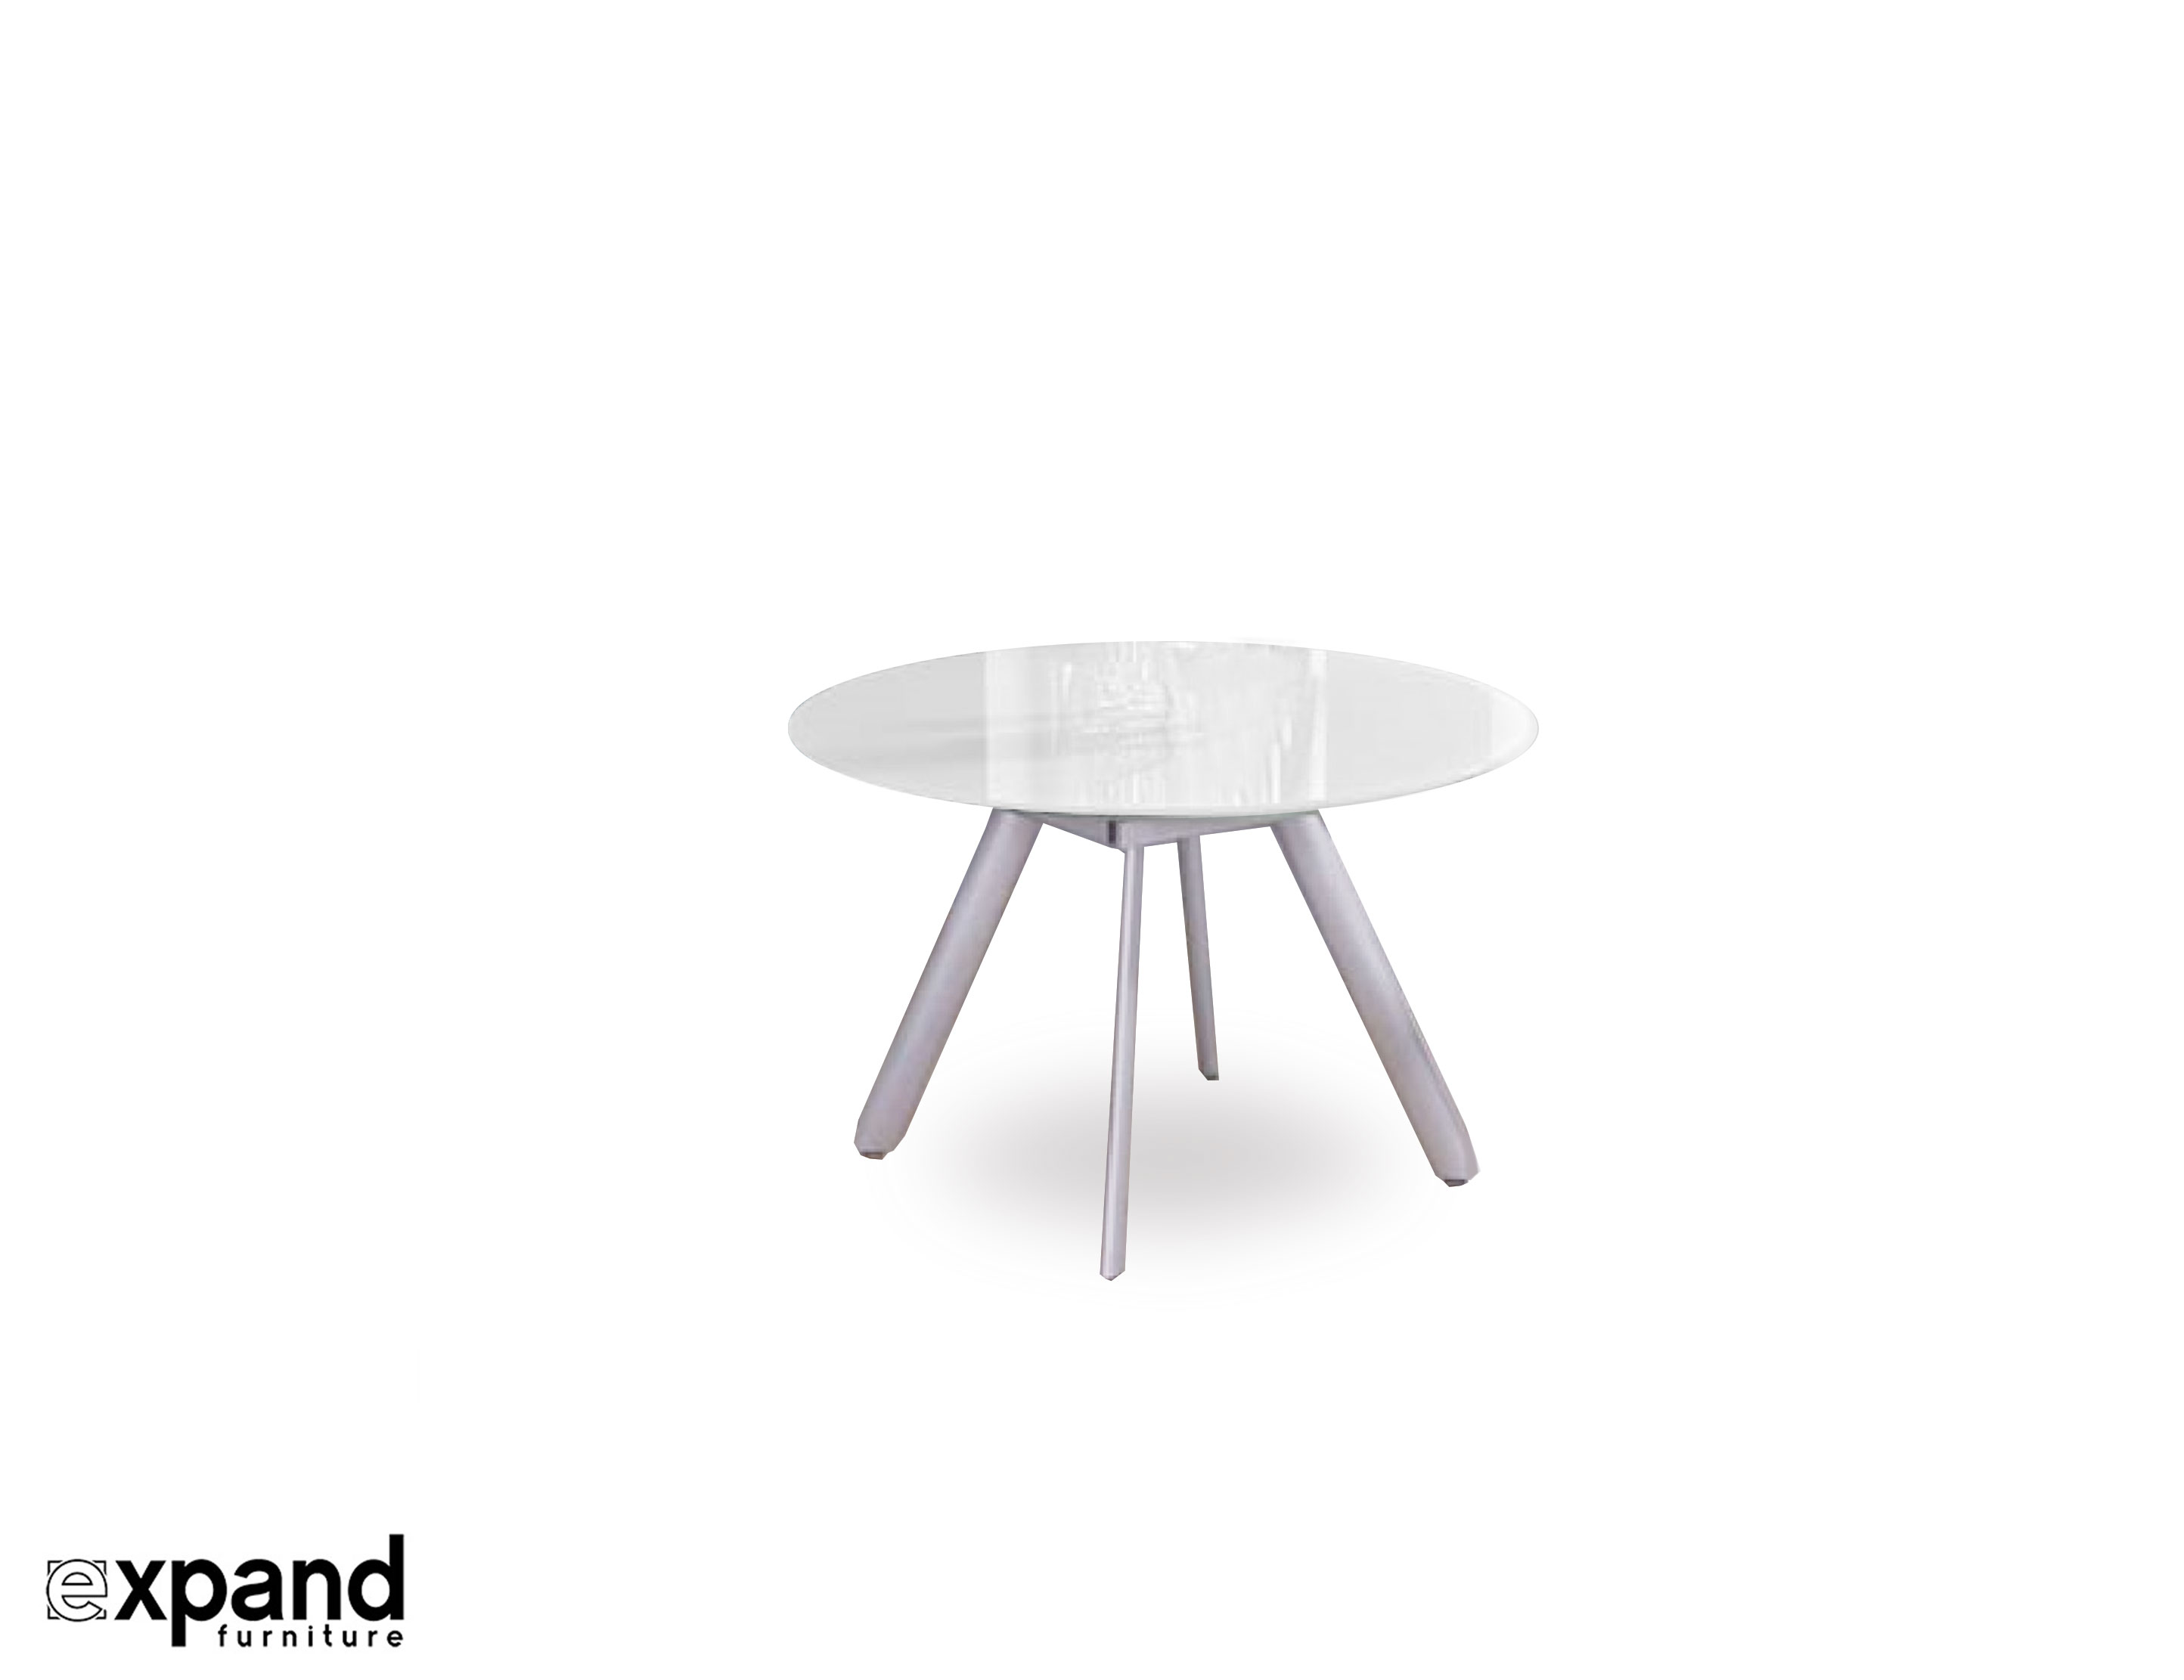 The Butterfly Expandable Round Glass Dining Table Expand Furniture Foldin